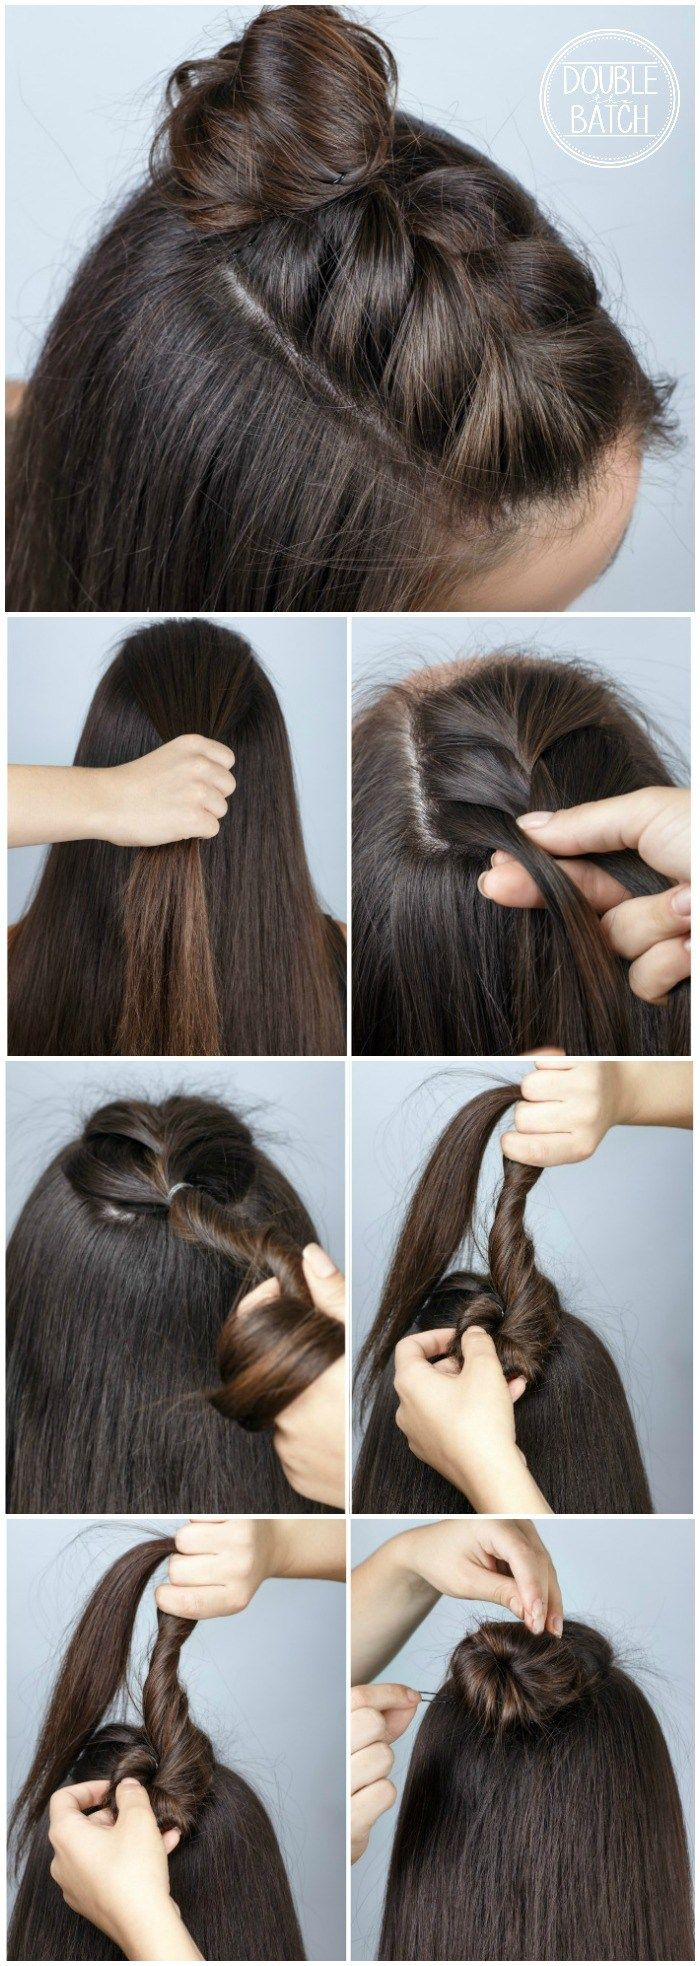 Half Braid Tutorial Video Hairstyle Tutorial Included Uplifting Mayhem Hair Styles Long Hair Styles Pinterest Hair